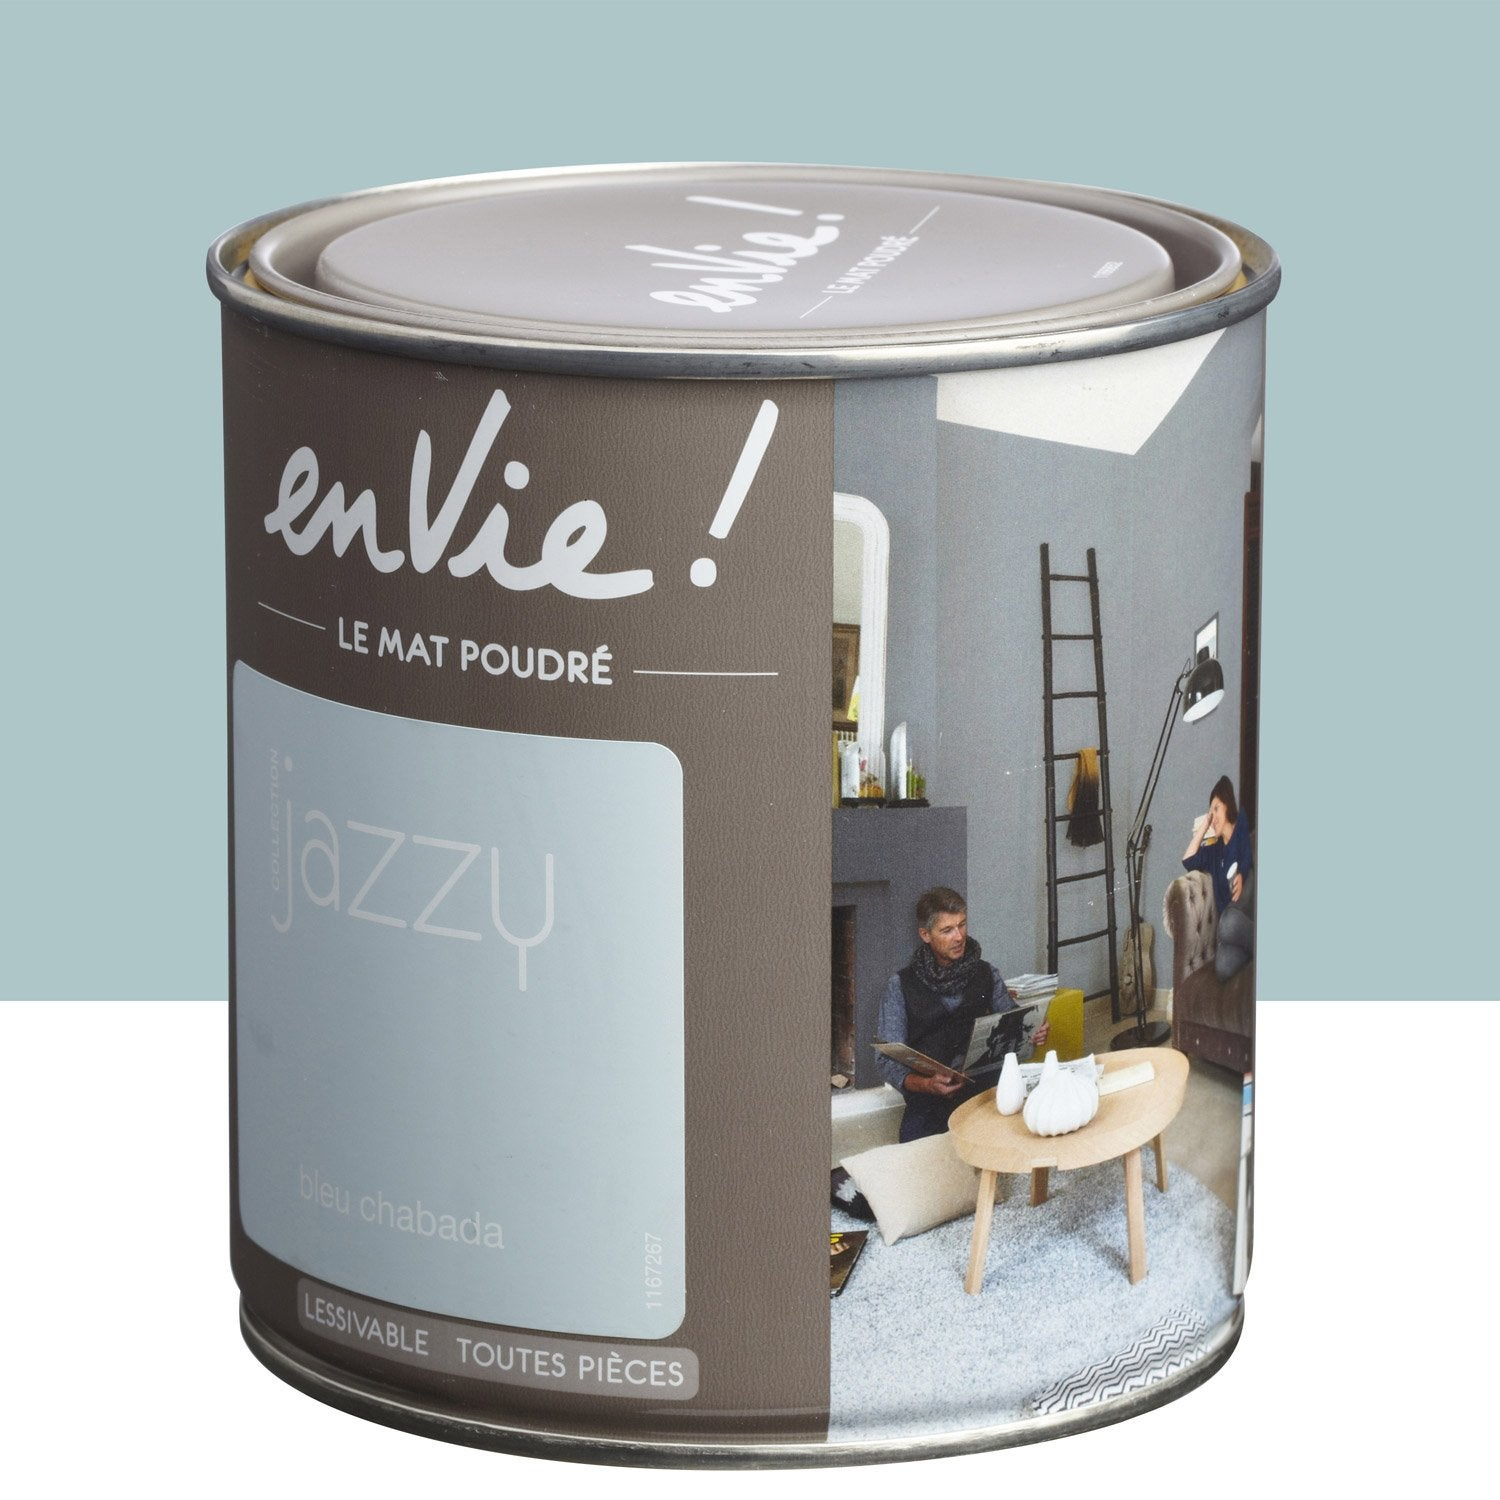 Peinture bleu chabada luxens envie collection jazzy 0 5 l leroy merlin - Peinture pailletee leroy merlin ...